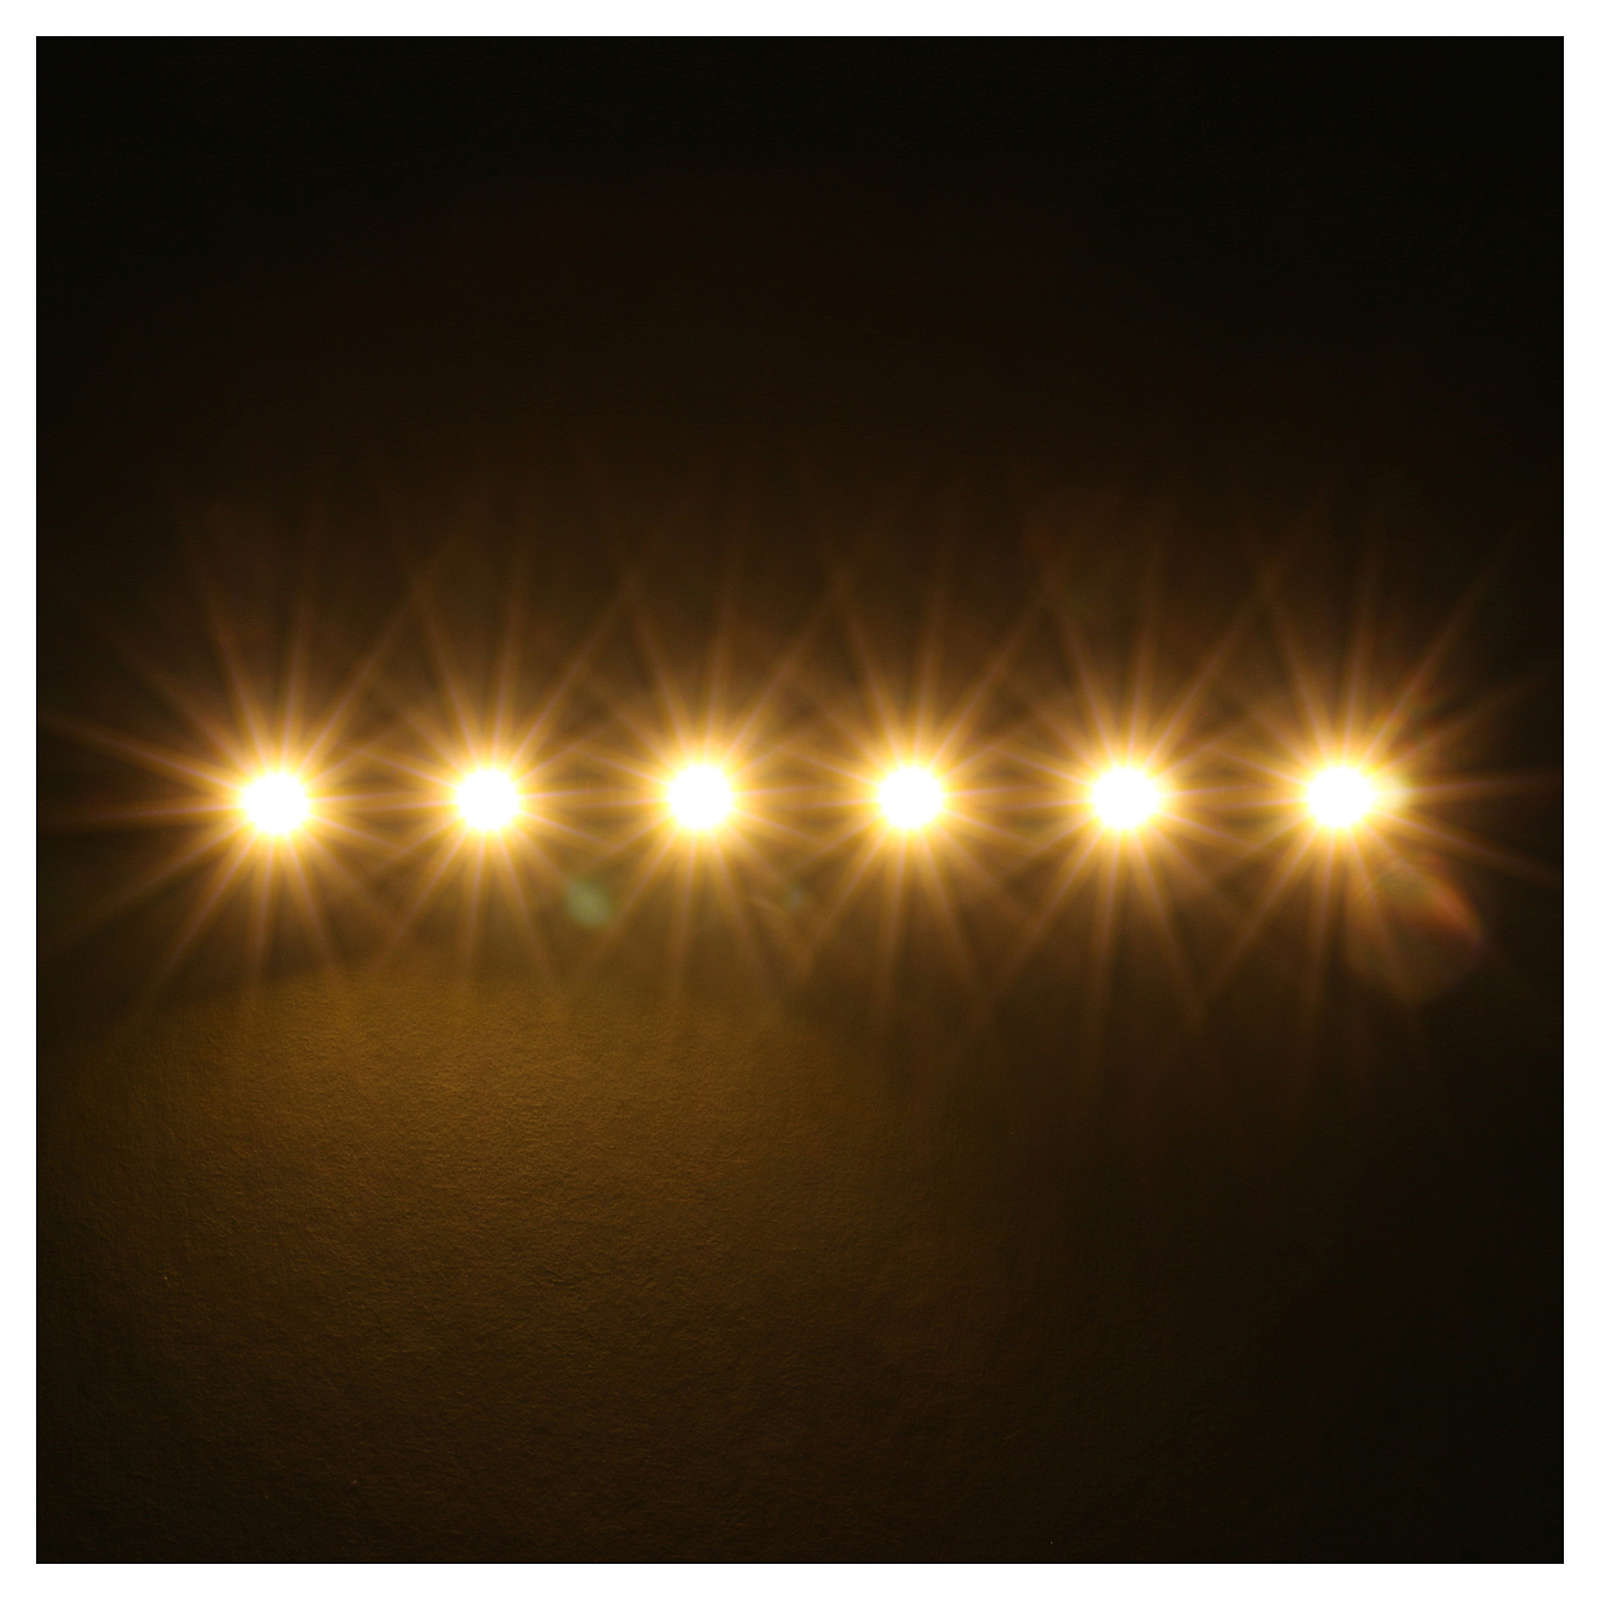 LED strip with 6 lights 0,8x8cm, warm white for Frisalight 4